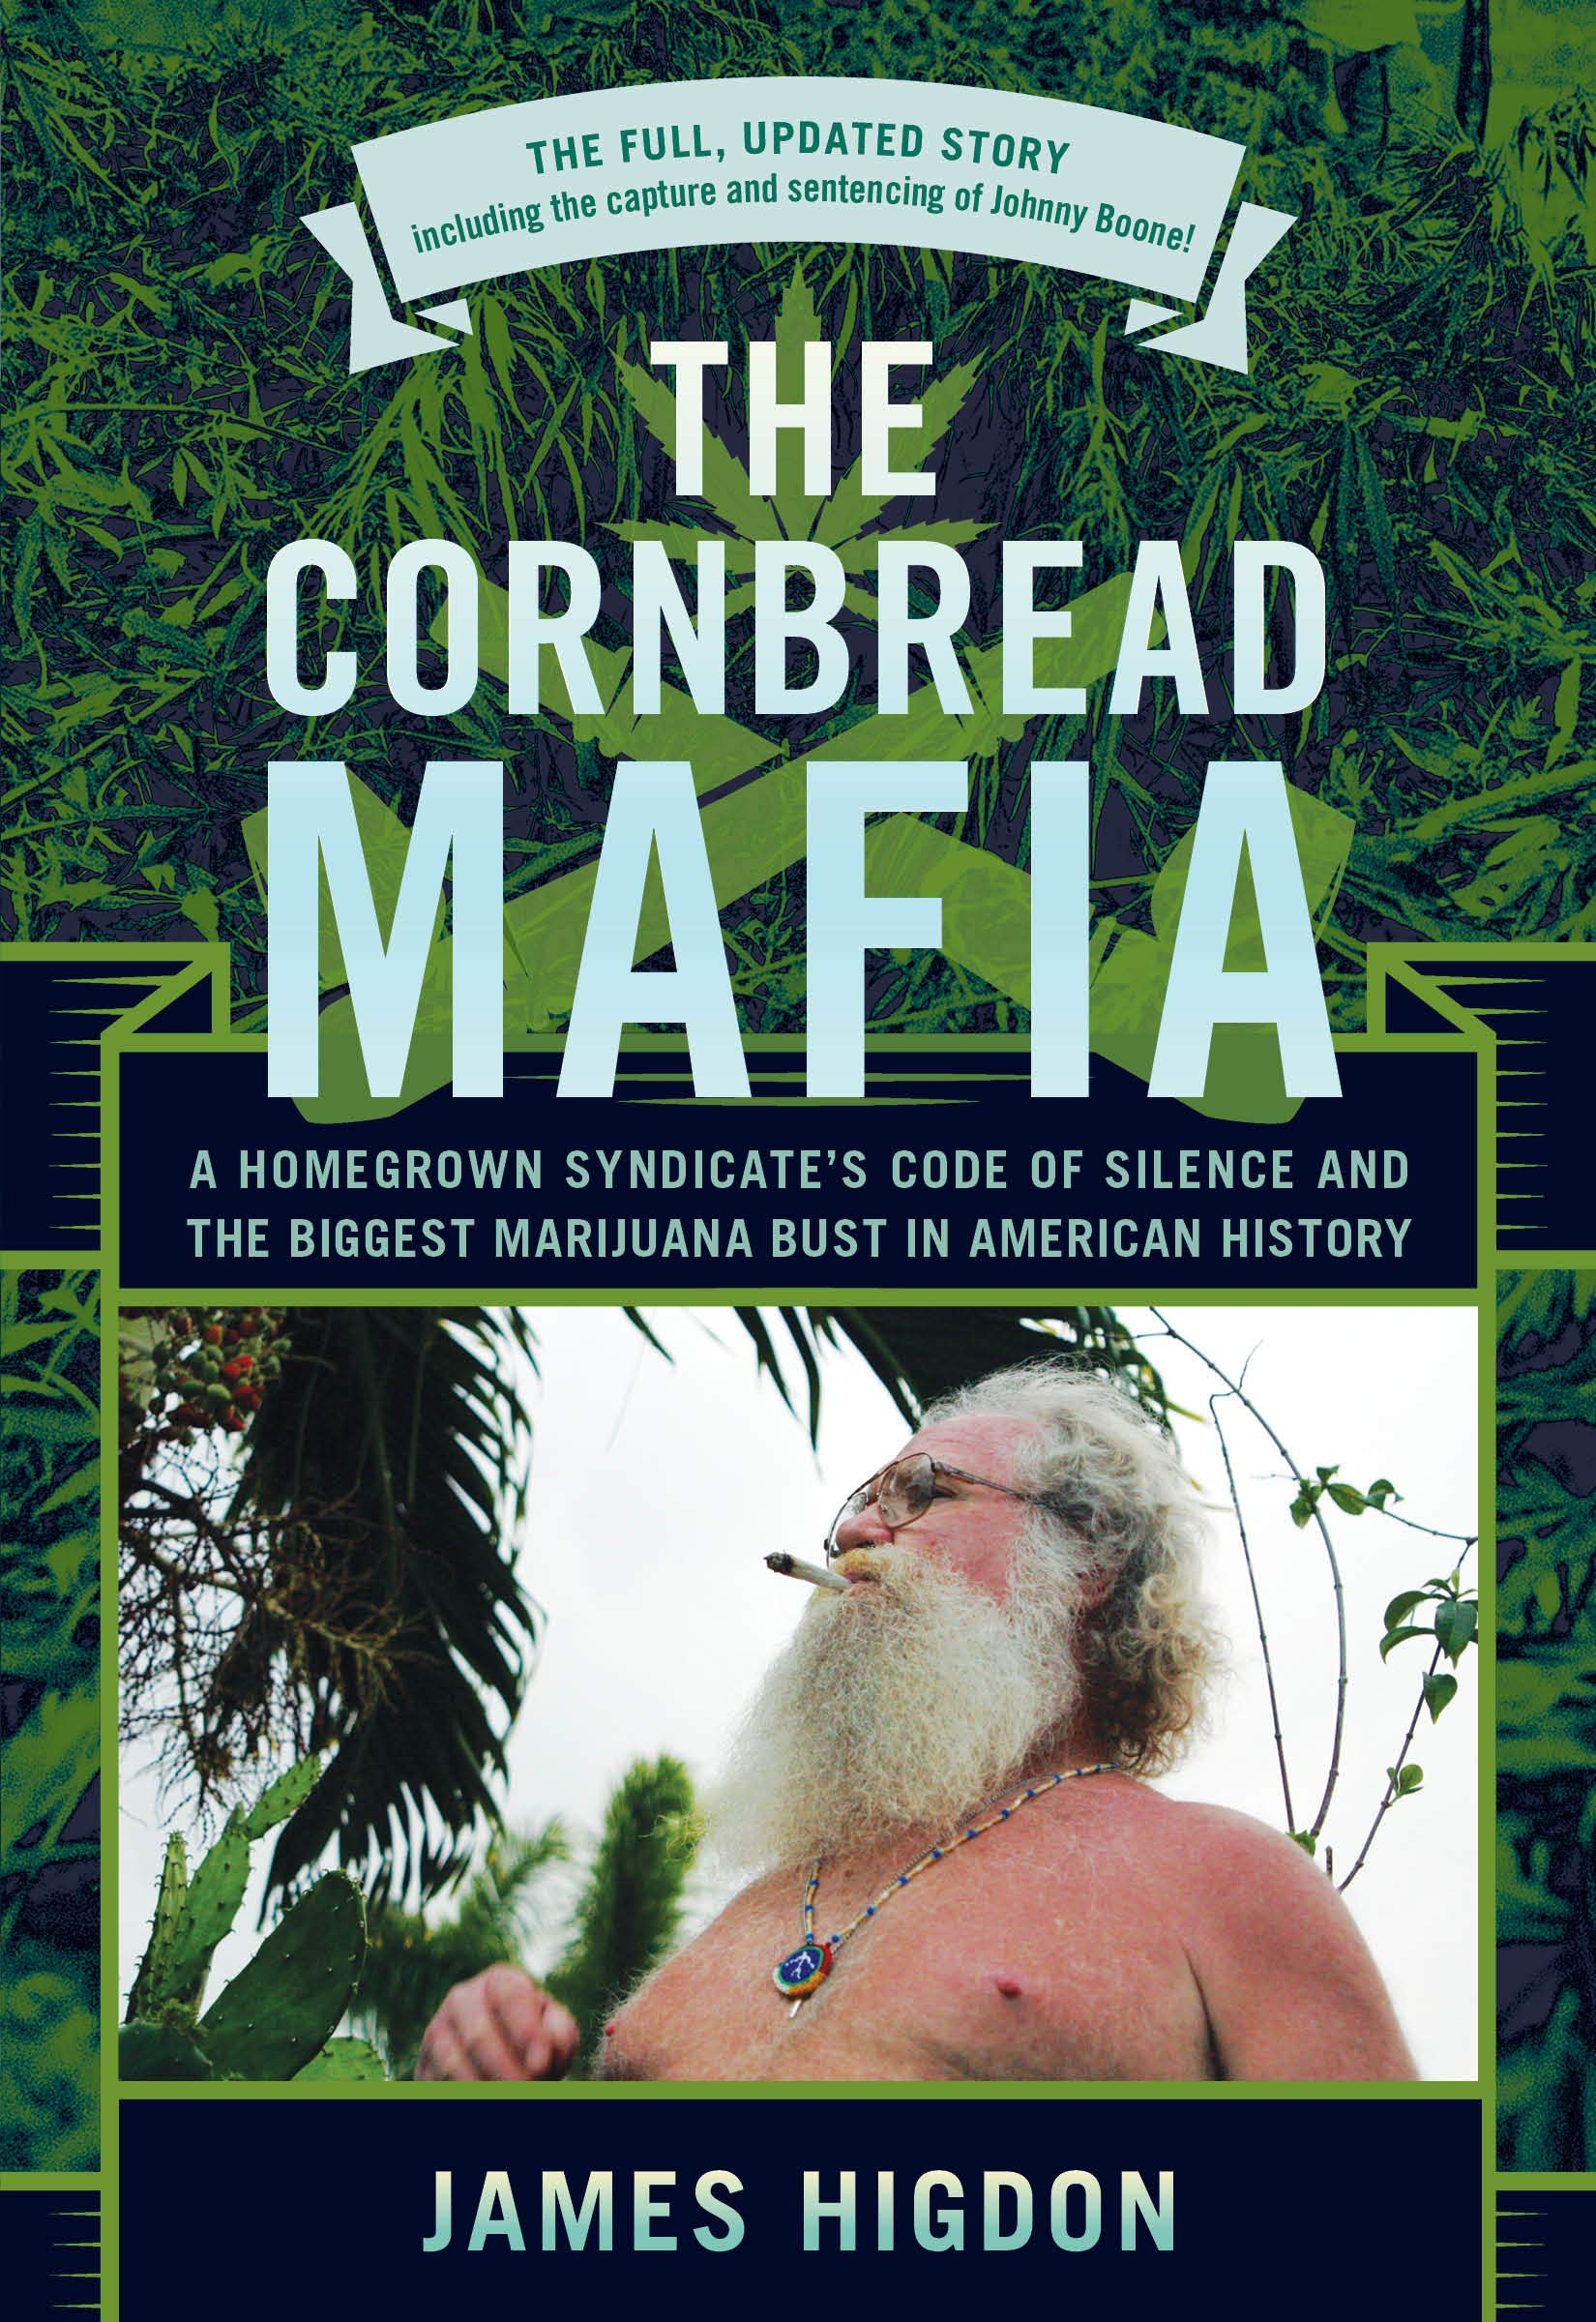 The Cornbread Mafia: A Homegrown Syndicates Code of Silence ...